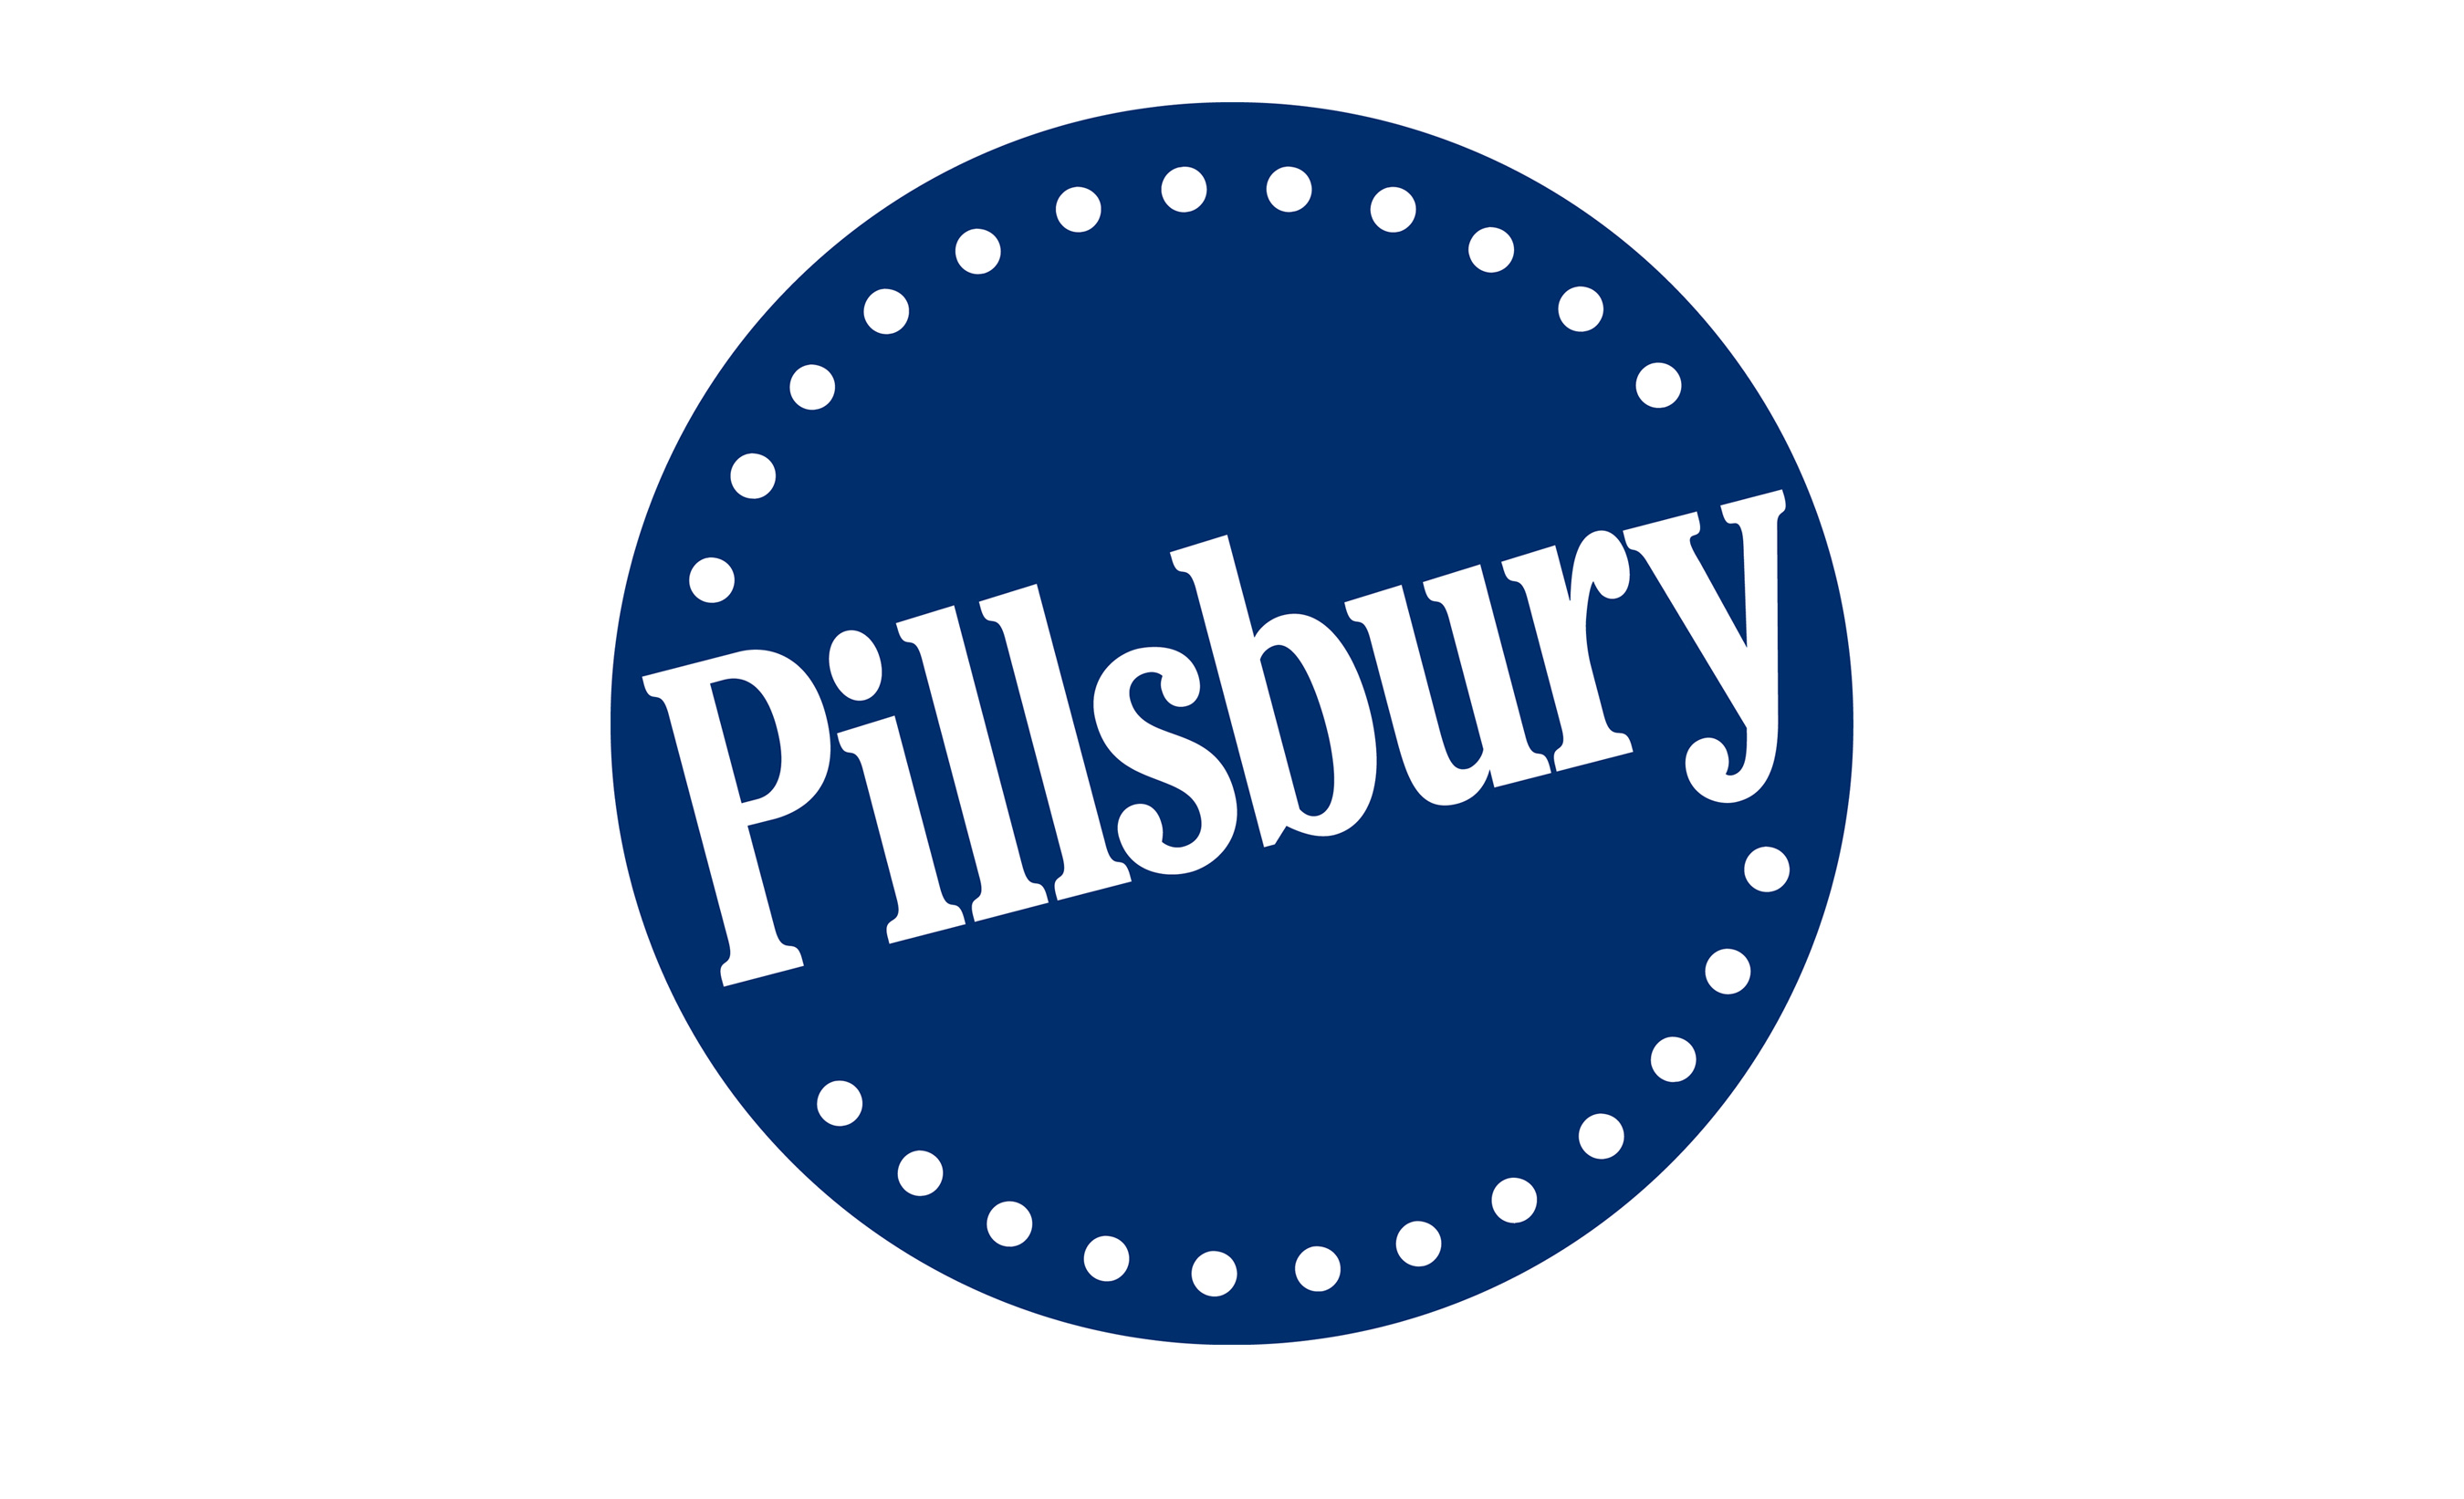 Since its inception in 1949, the Pillsbury Bake-Off® Contest has been about inspiring home cooks everywhere to share their recipes, and celebrate the stories behind them.